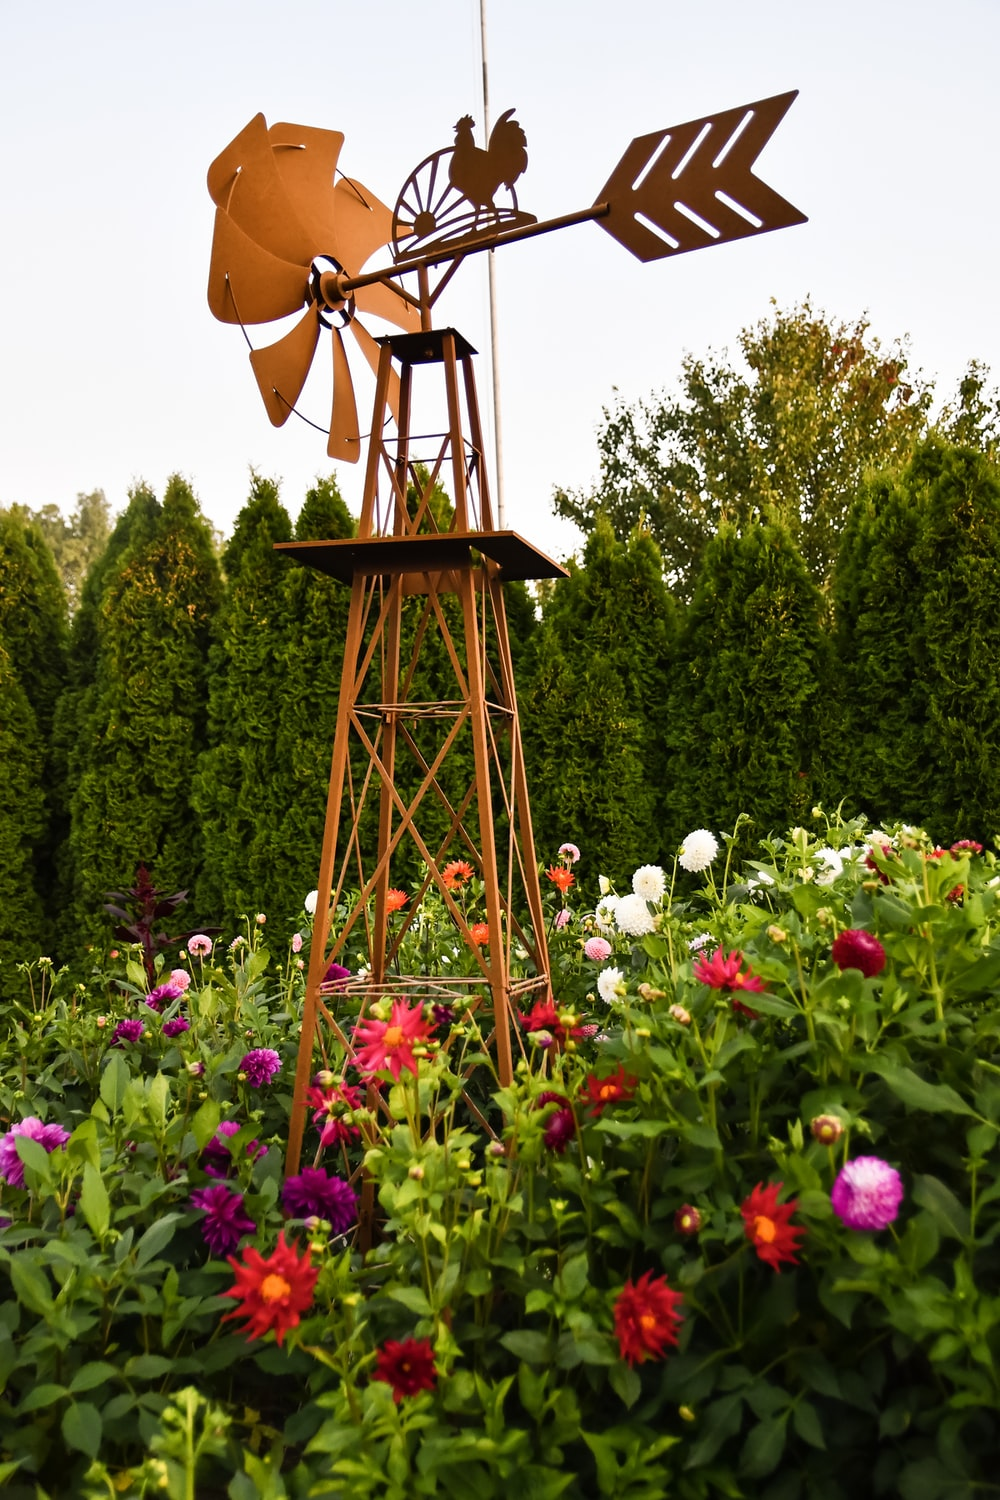 brown wooden tower with flowers and trees